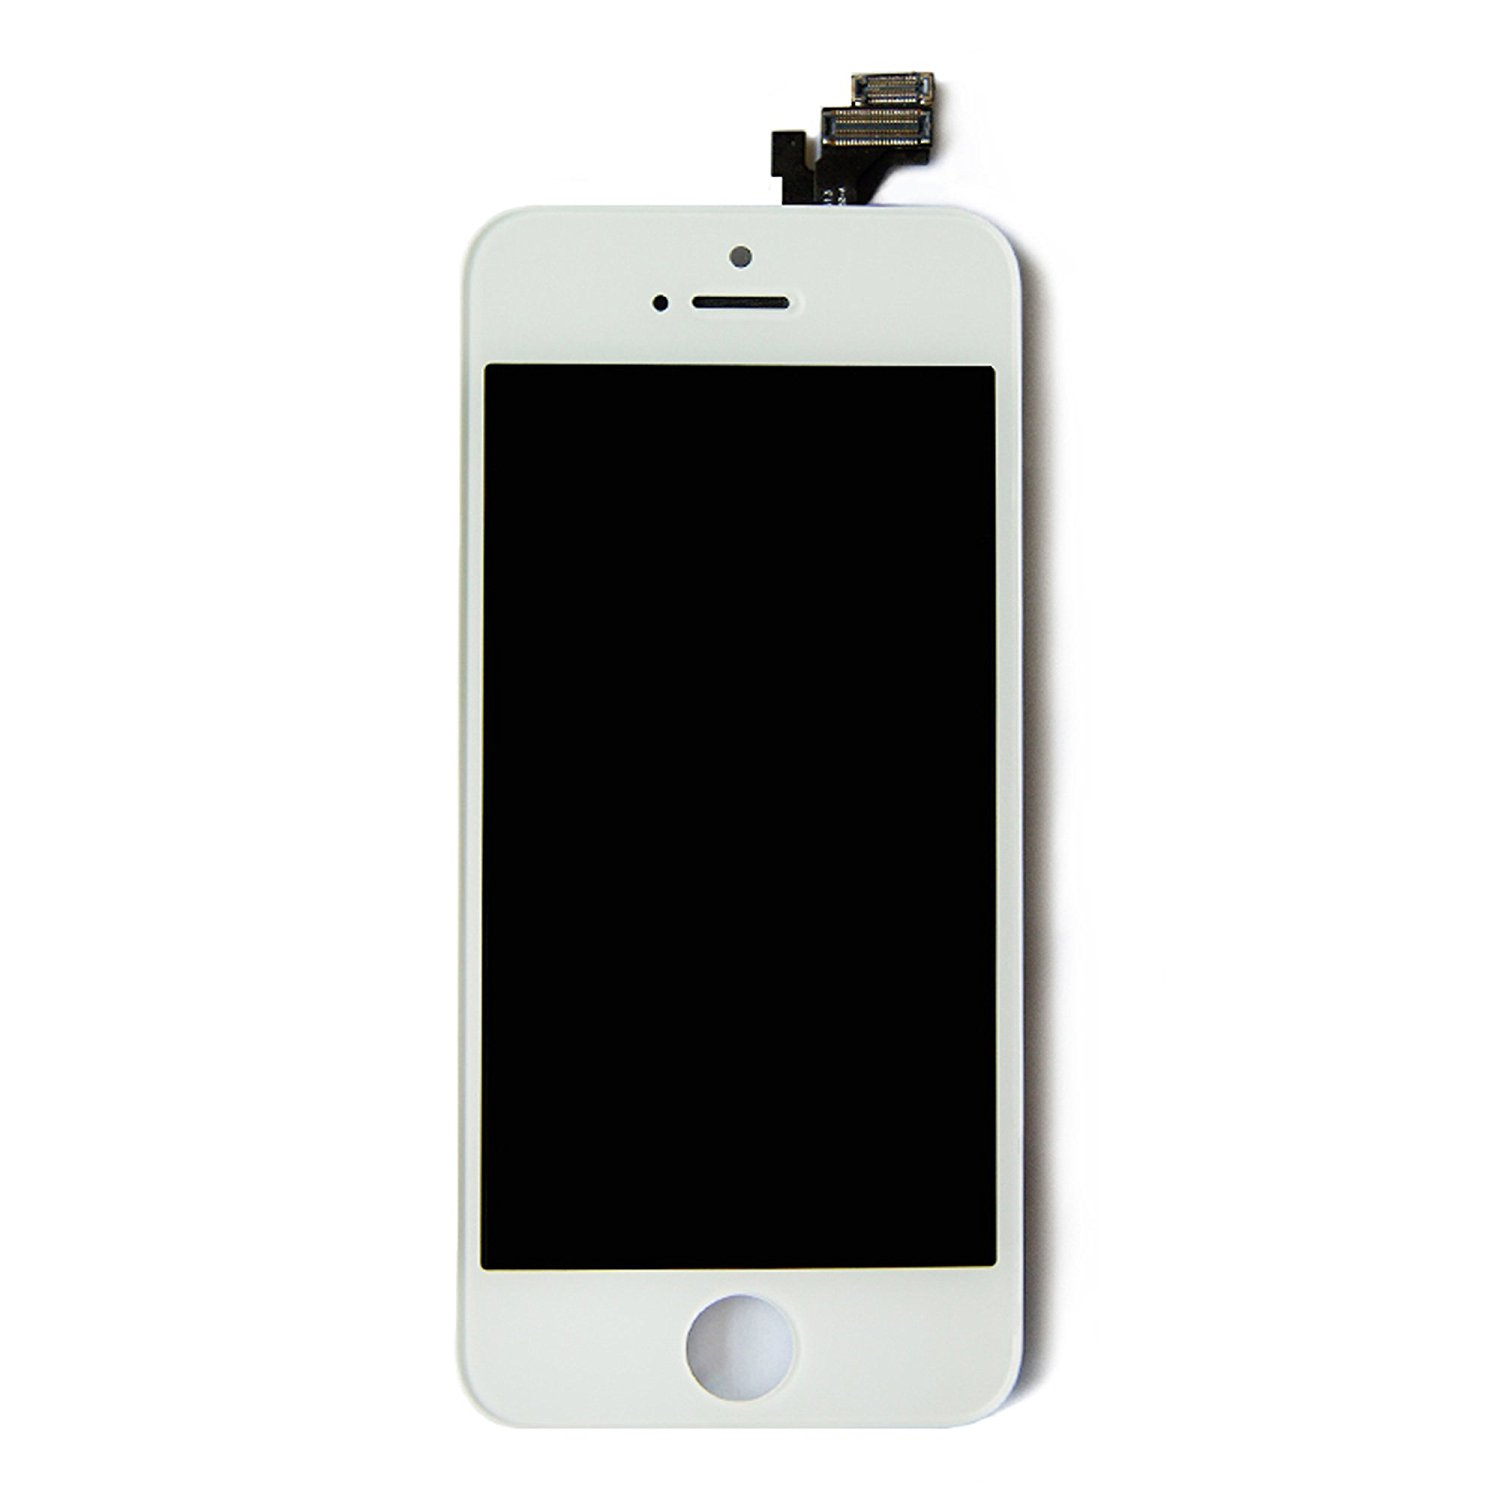 replacing iphone 5 screen iphone 5 5g screen lcd display and touch glass digitizer 5275